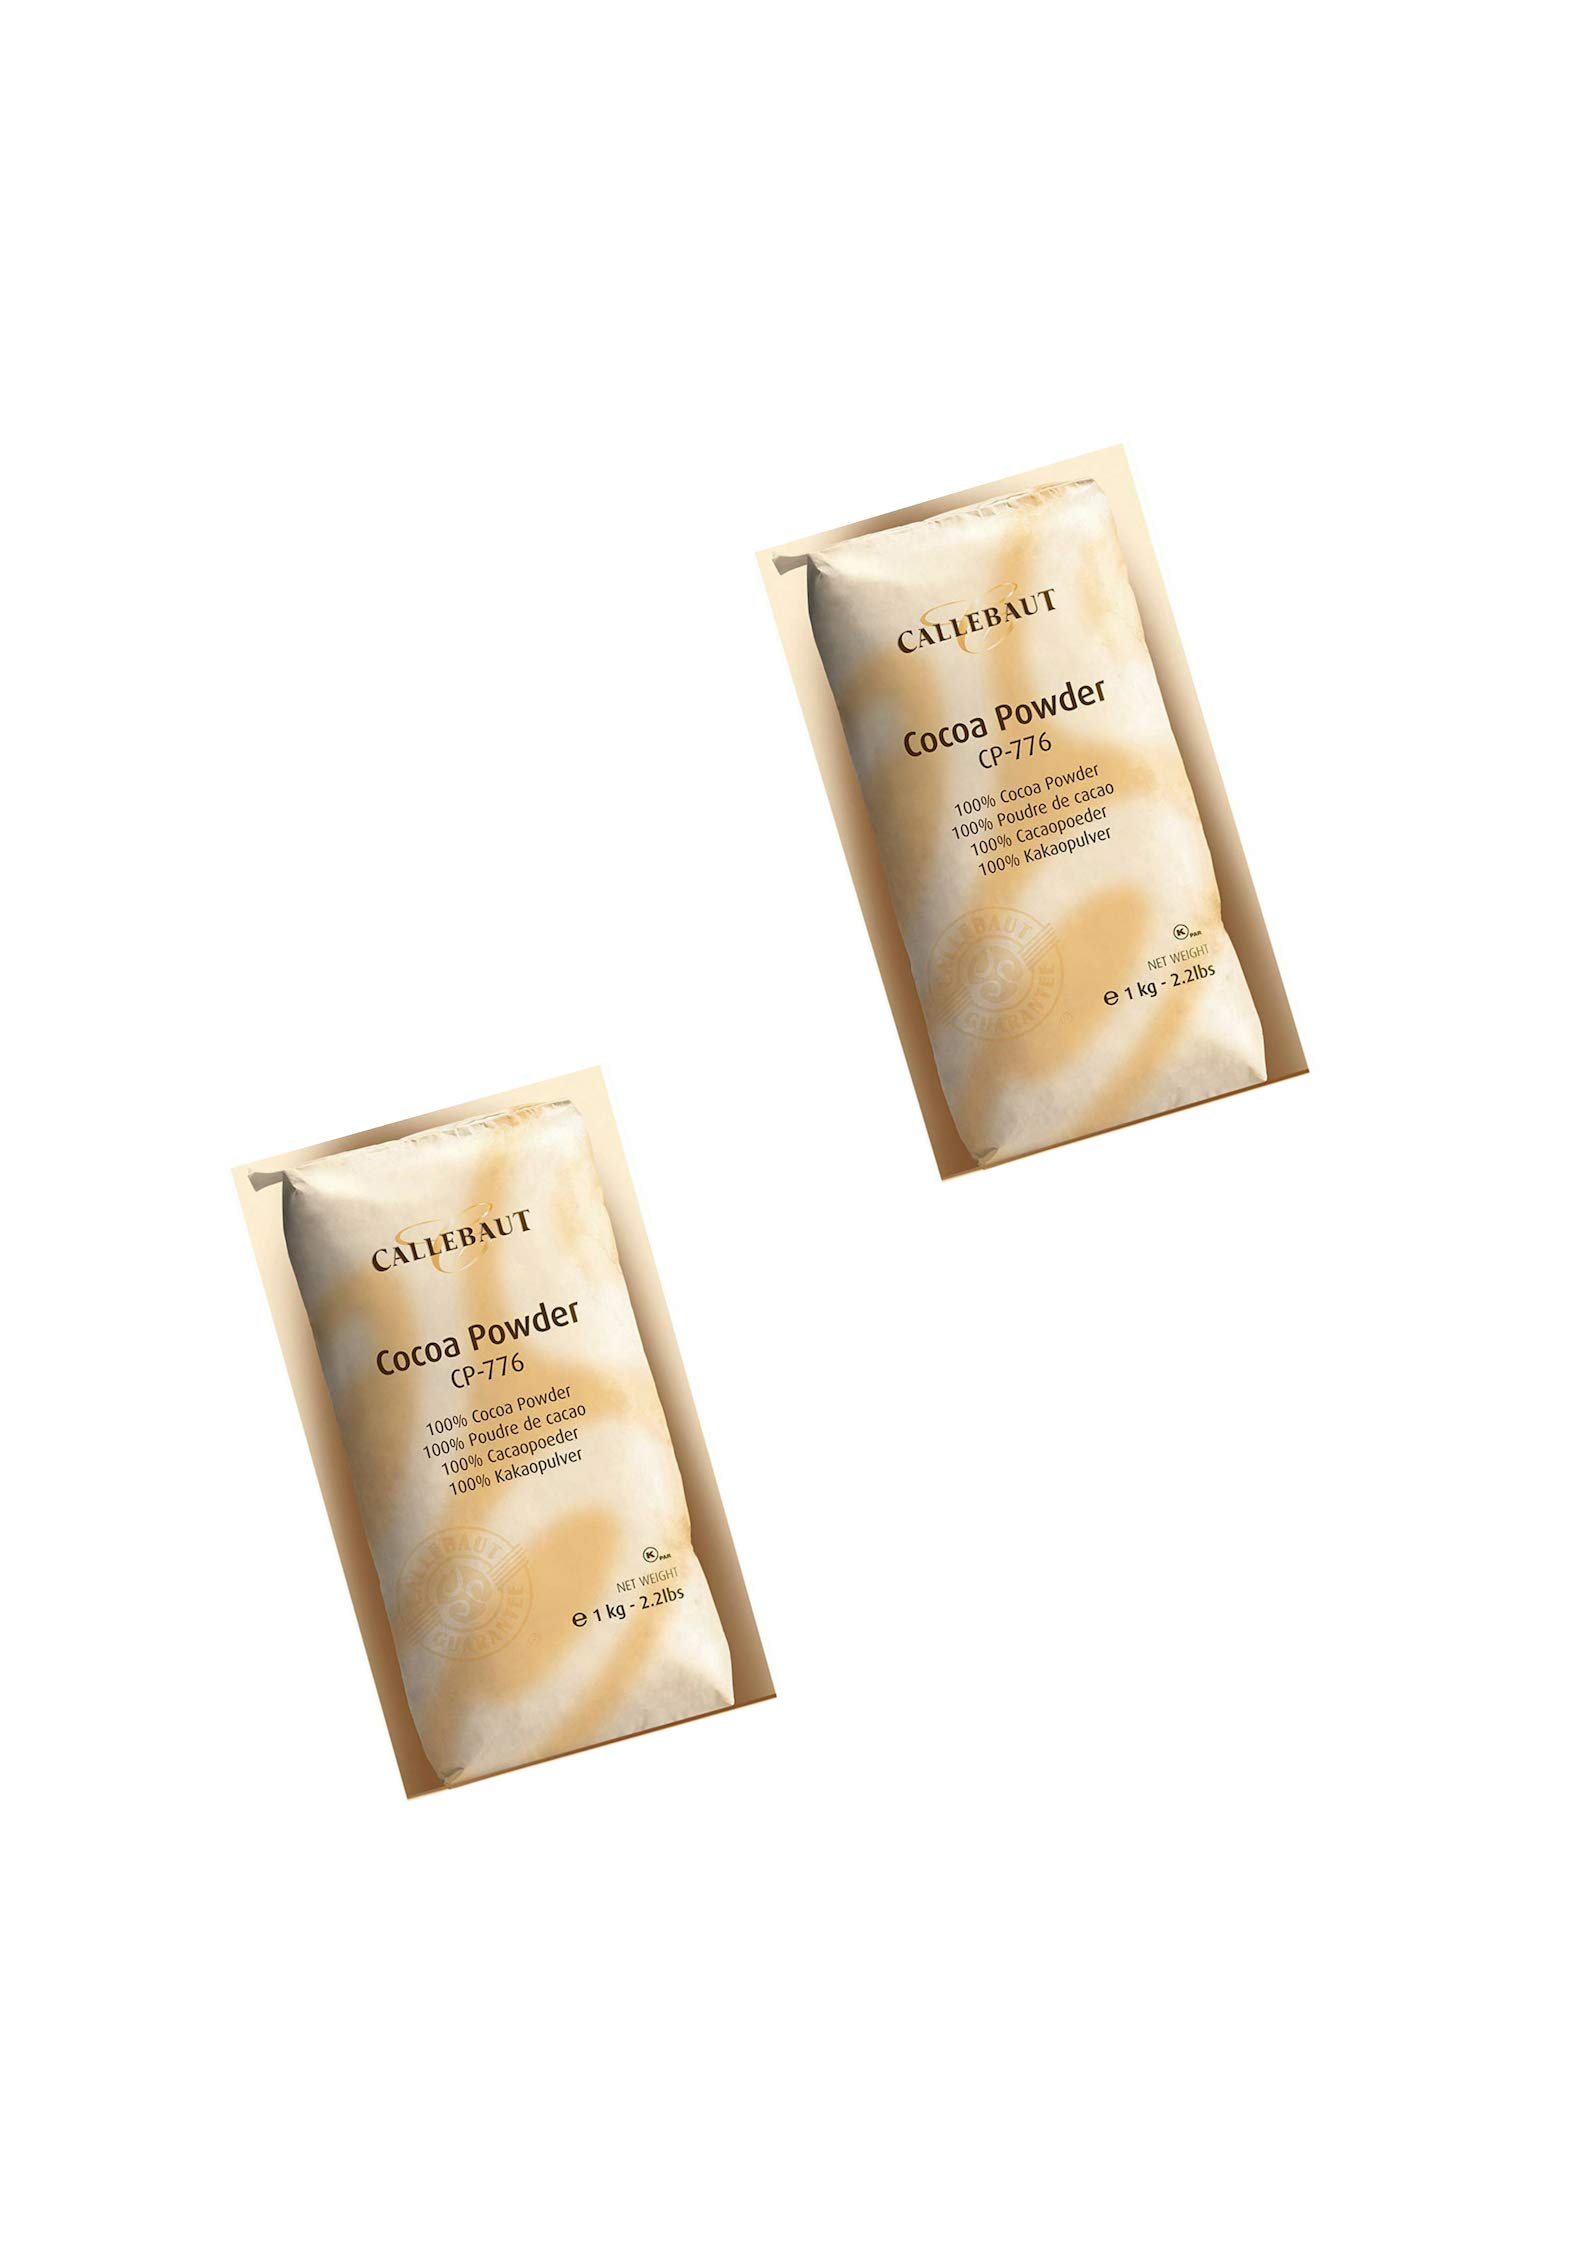 Callebaut Baking Cocoa Powder 2.2lb. bag in Cook's Illustrated (2pack)